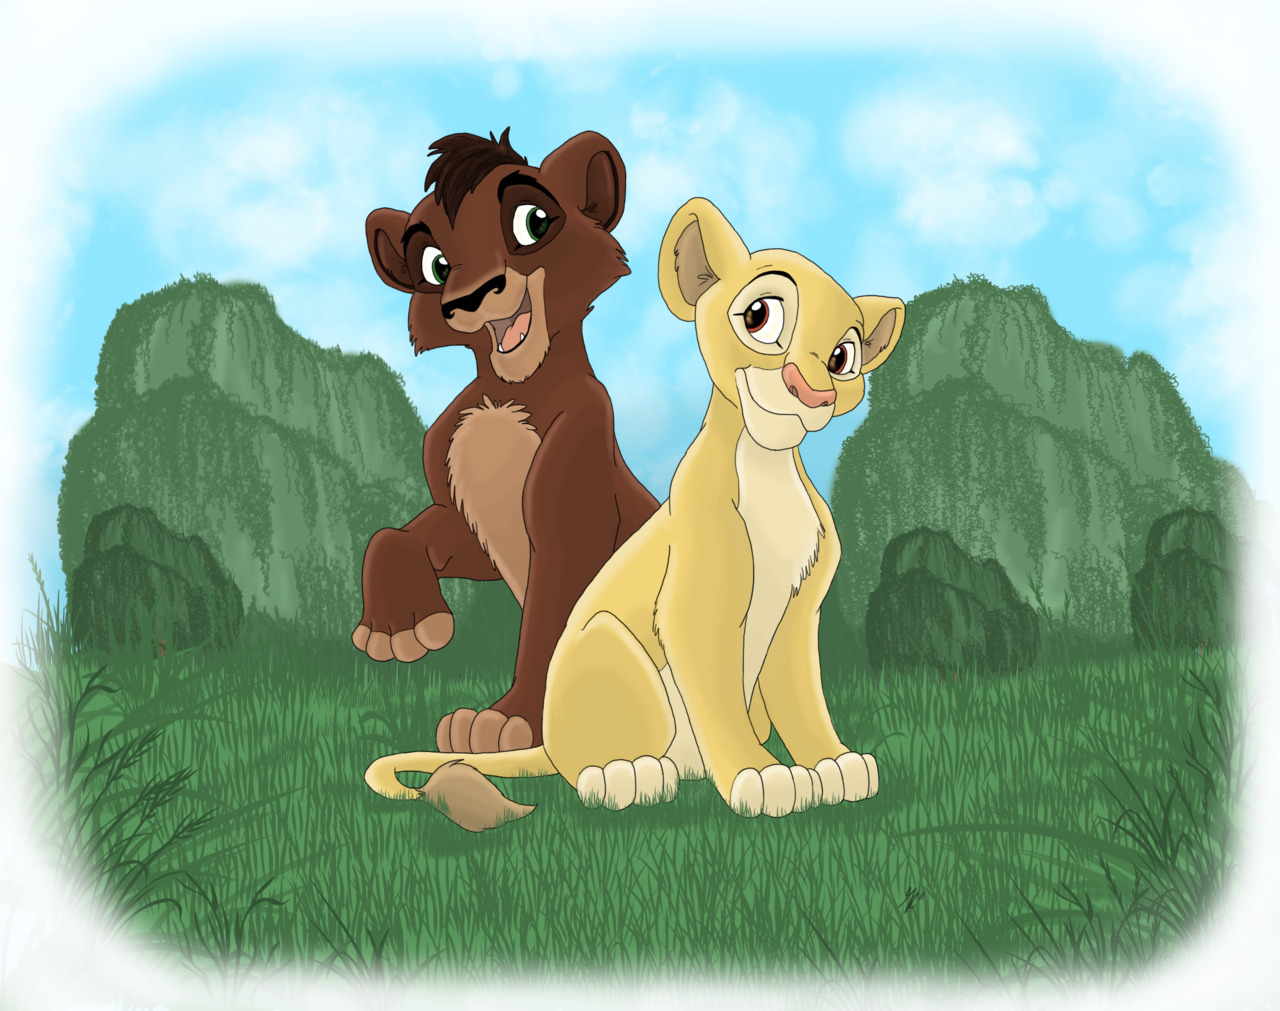 Kovu and Kiara by gillustrations